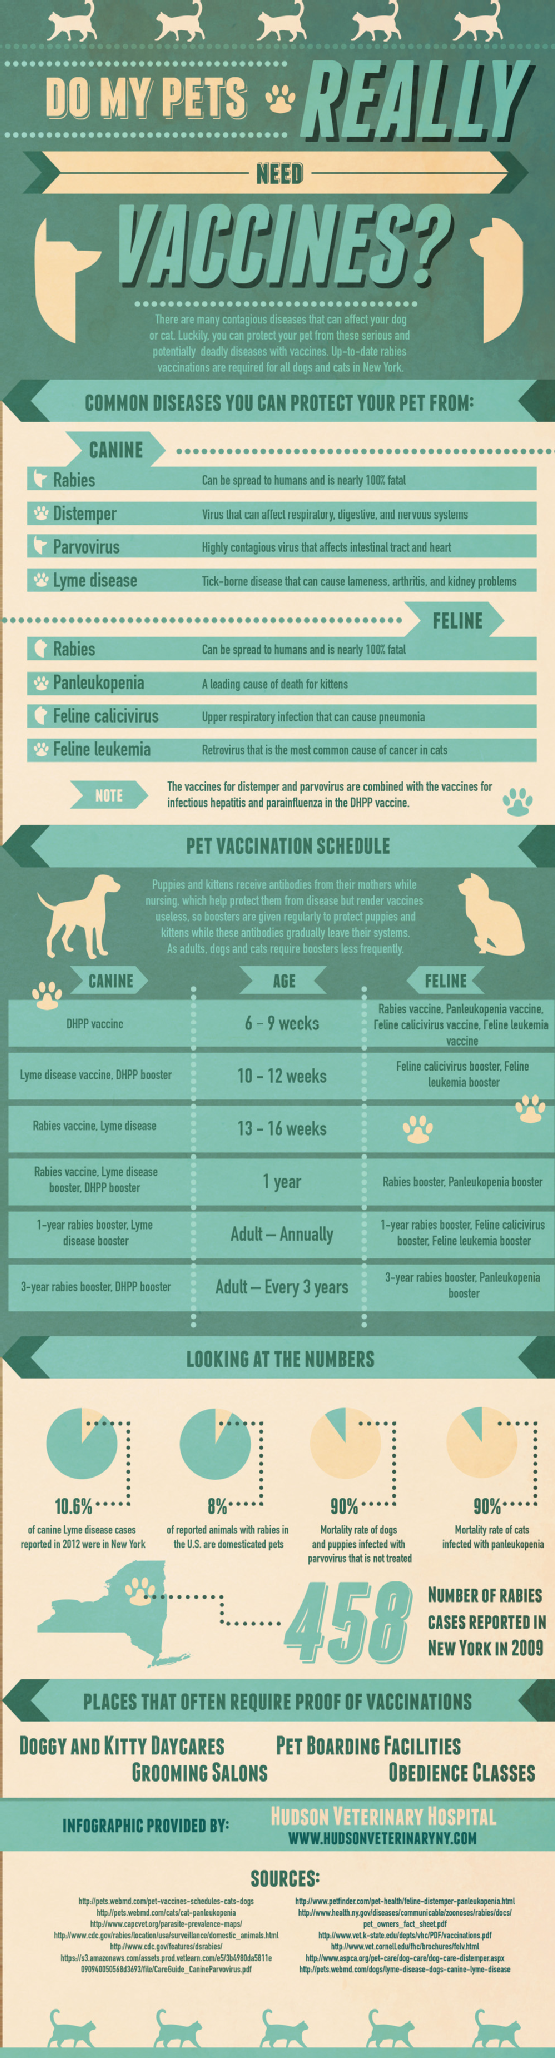 Do you know what vaccinations your pet needs? What about